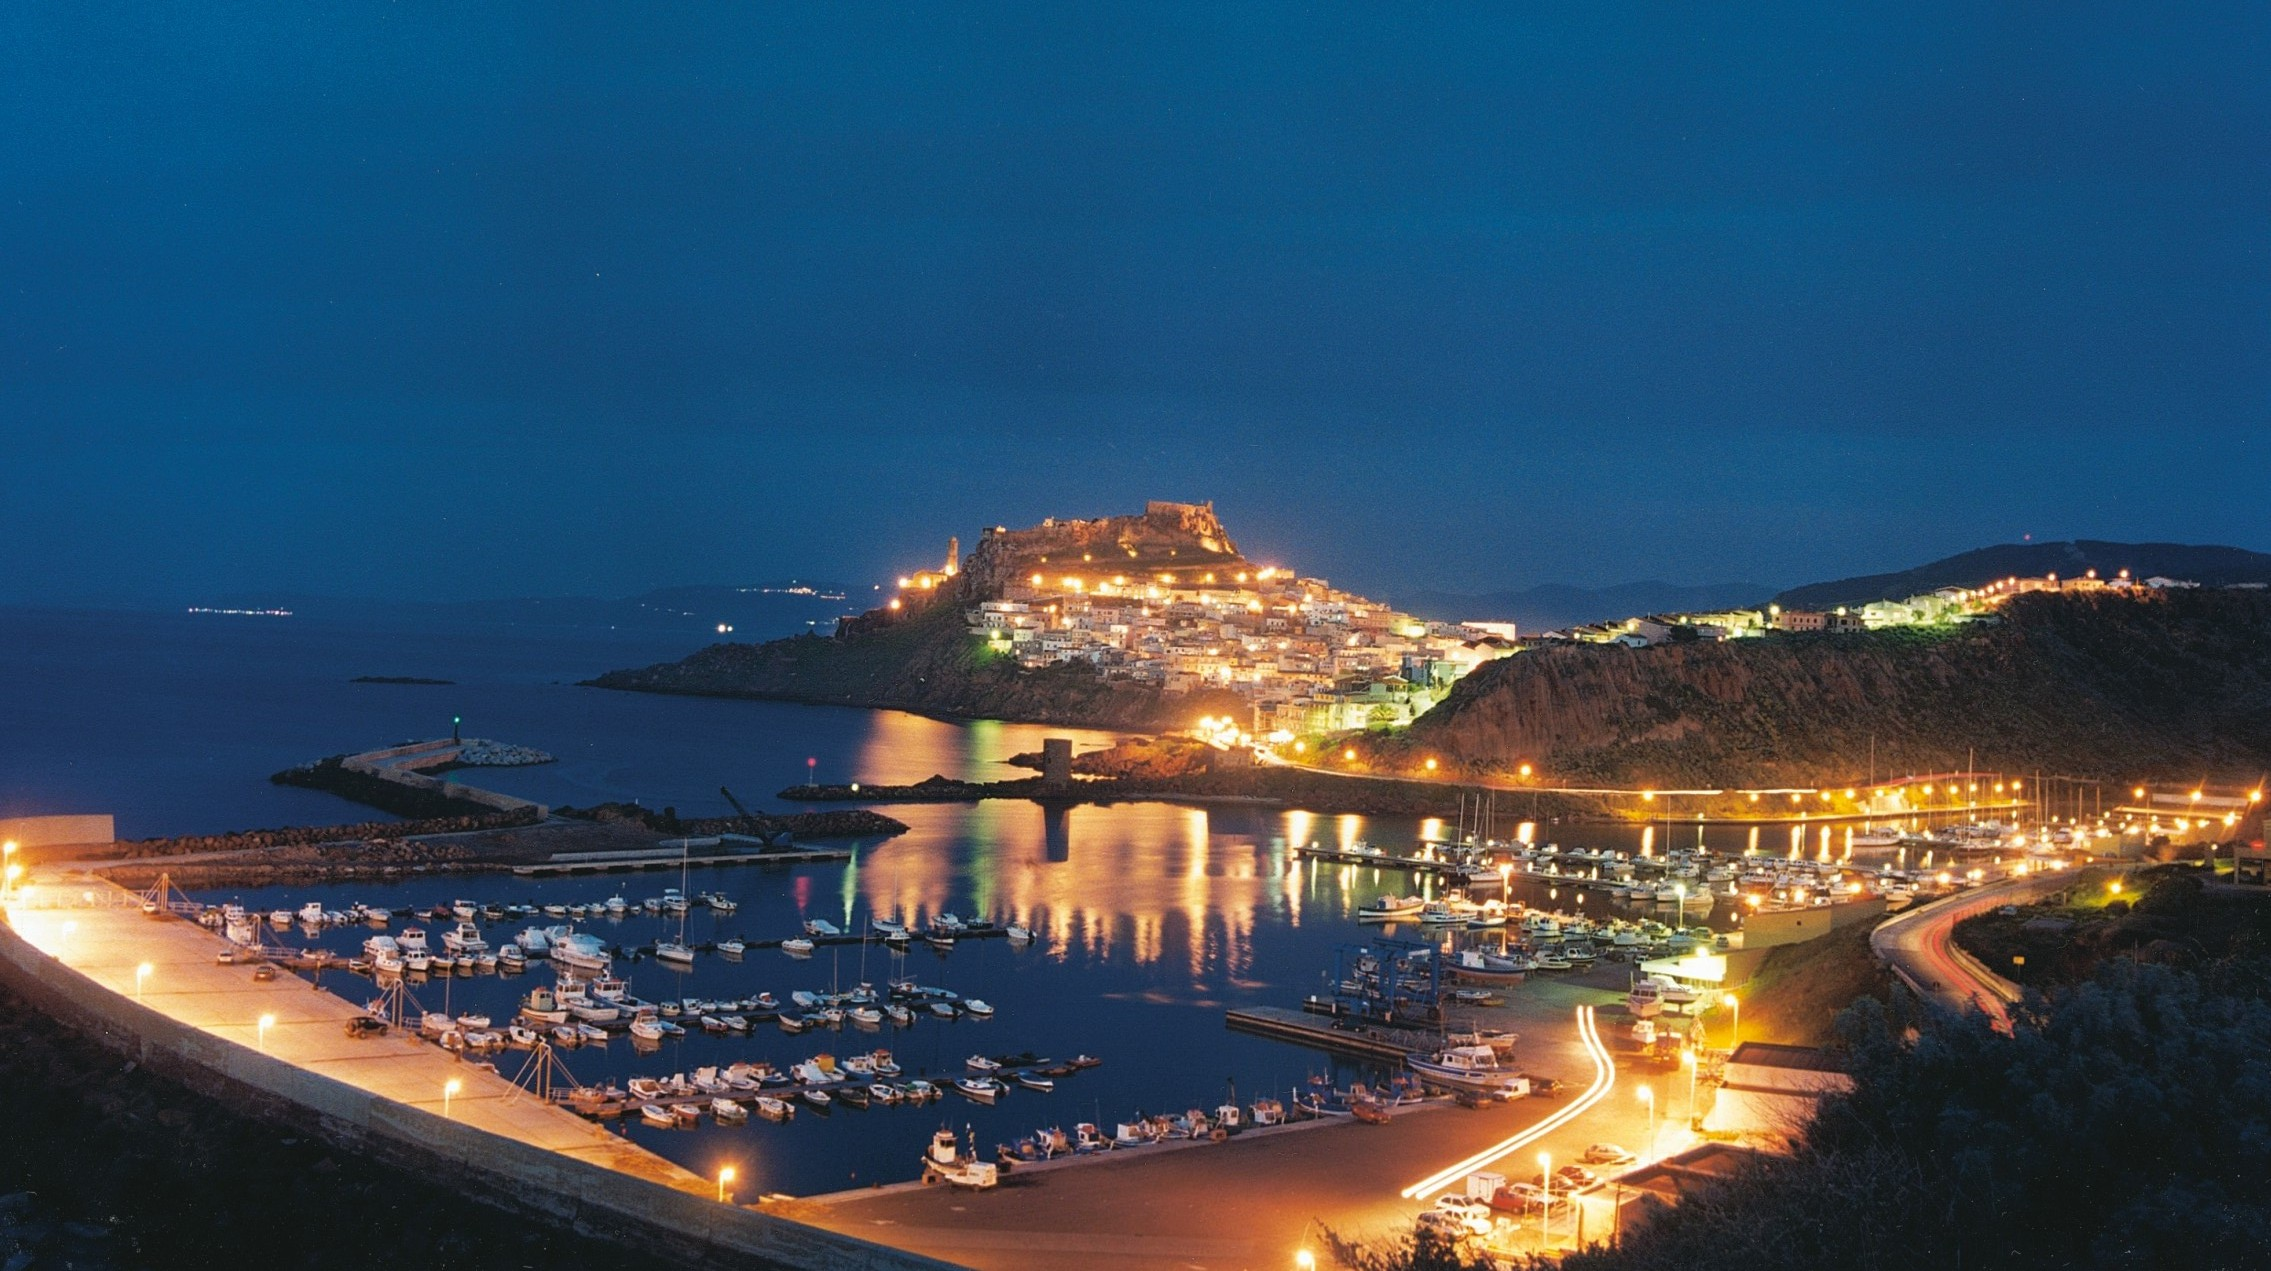 For Sale Other Residential Castelsardo Sassari Italy